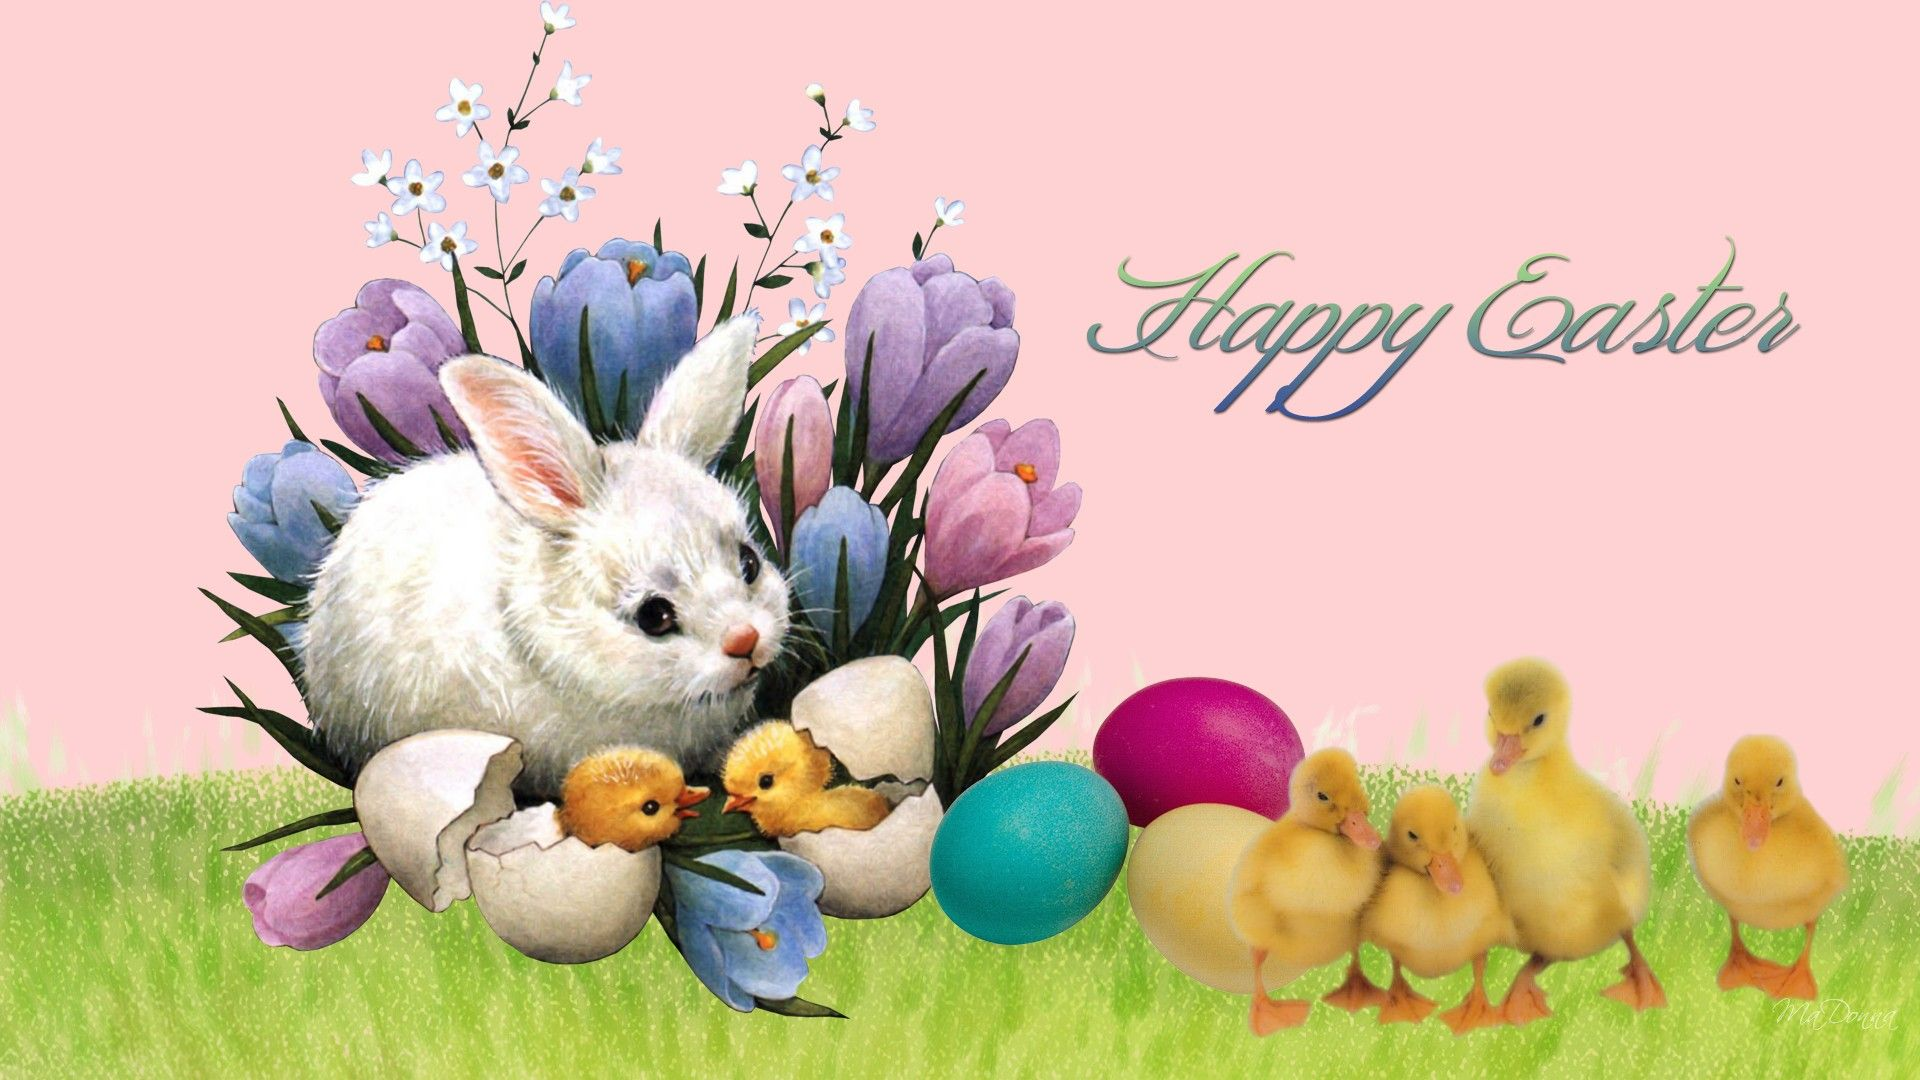 Free Wallpaper Easter Bunny Rabbits Easter Bunny Friends